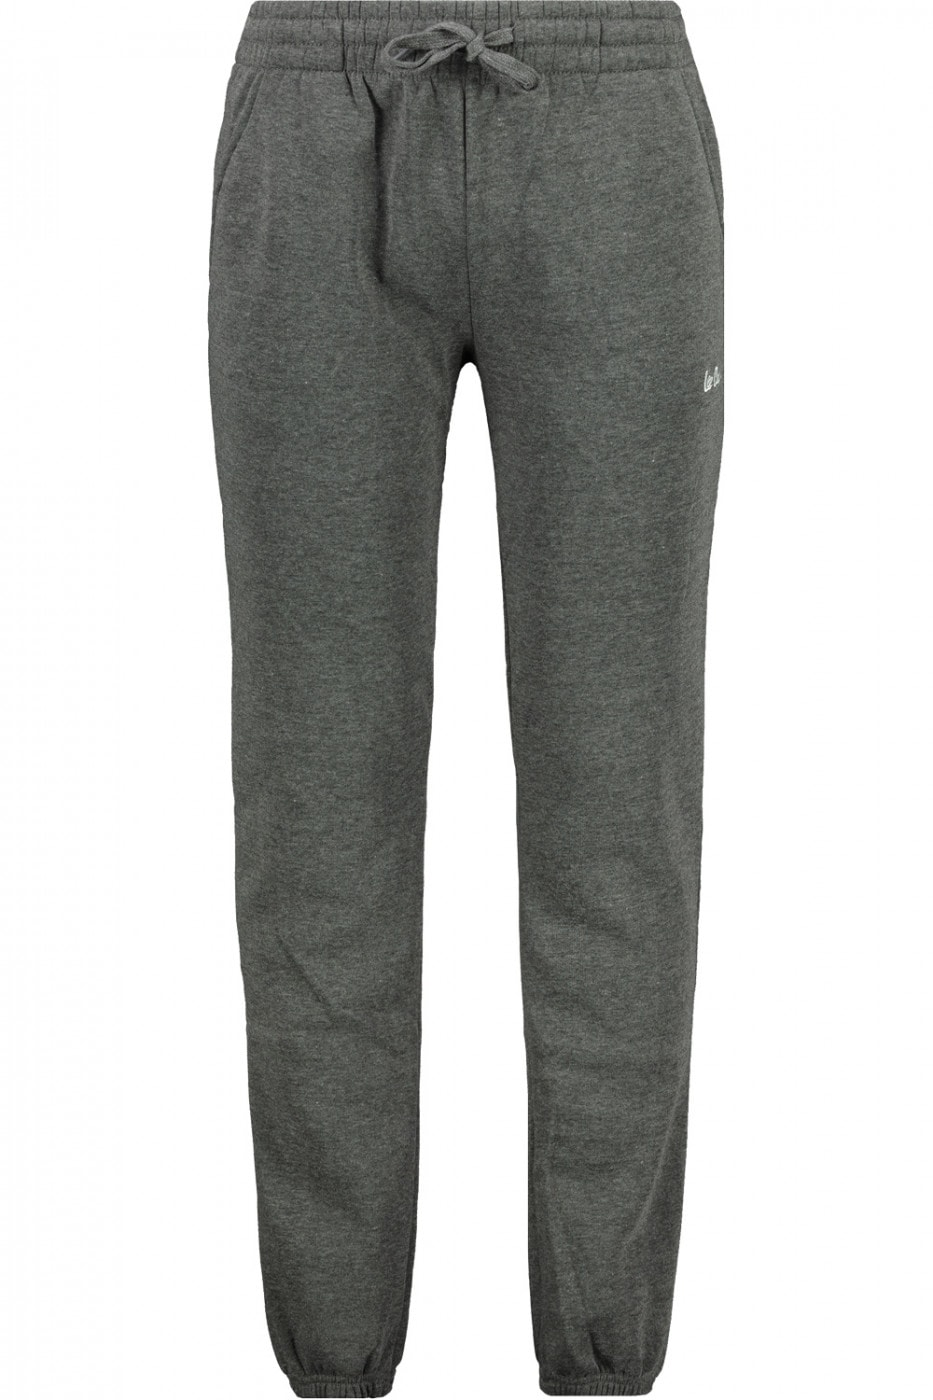 Meeste dressipüksid Lee Cooper Closed Hem Fleece